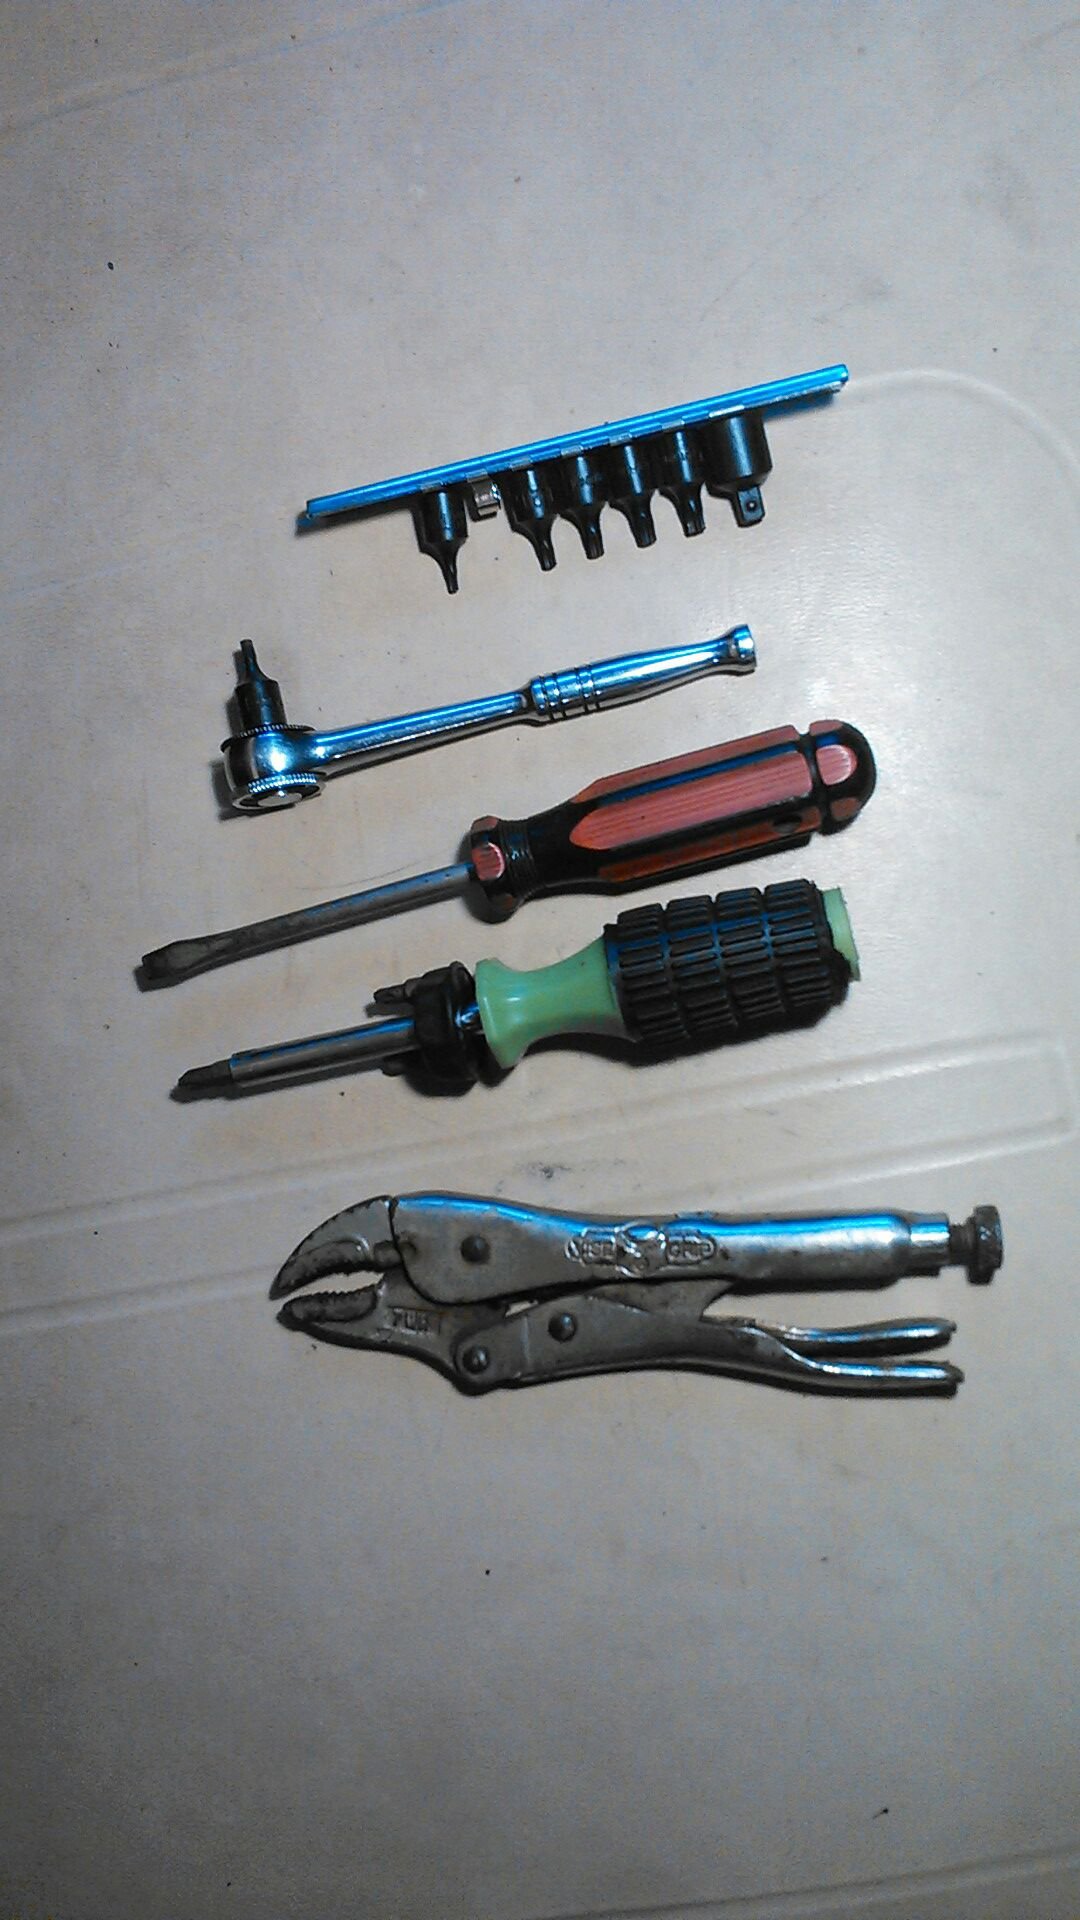 Picture of Tools.